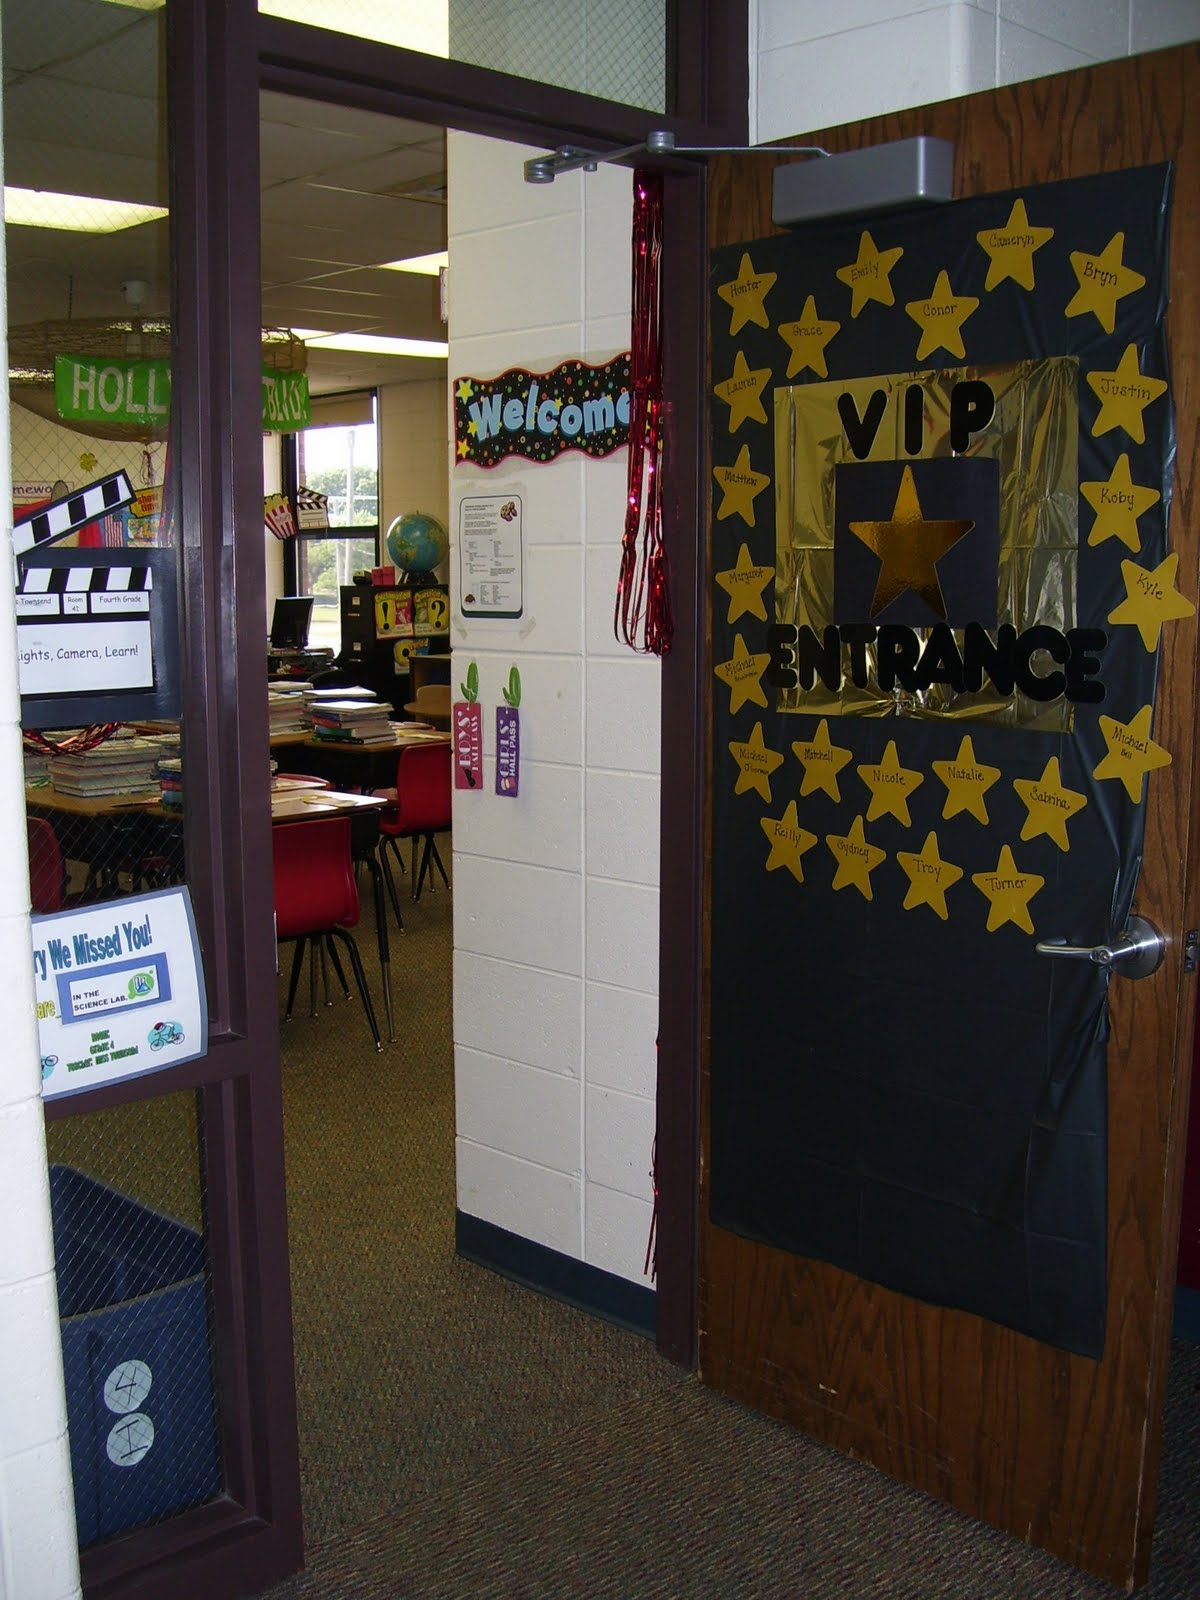 Classroom Vip Ideas : Tech beyond walls hollywood classroom theme ideas decor